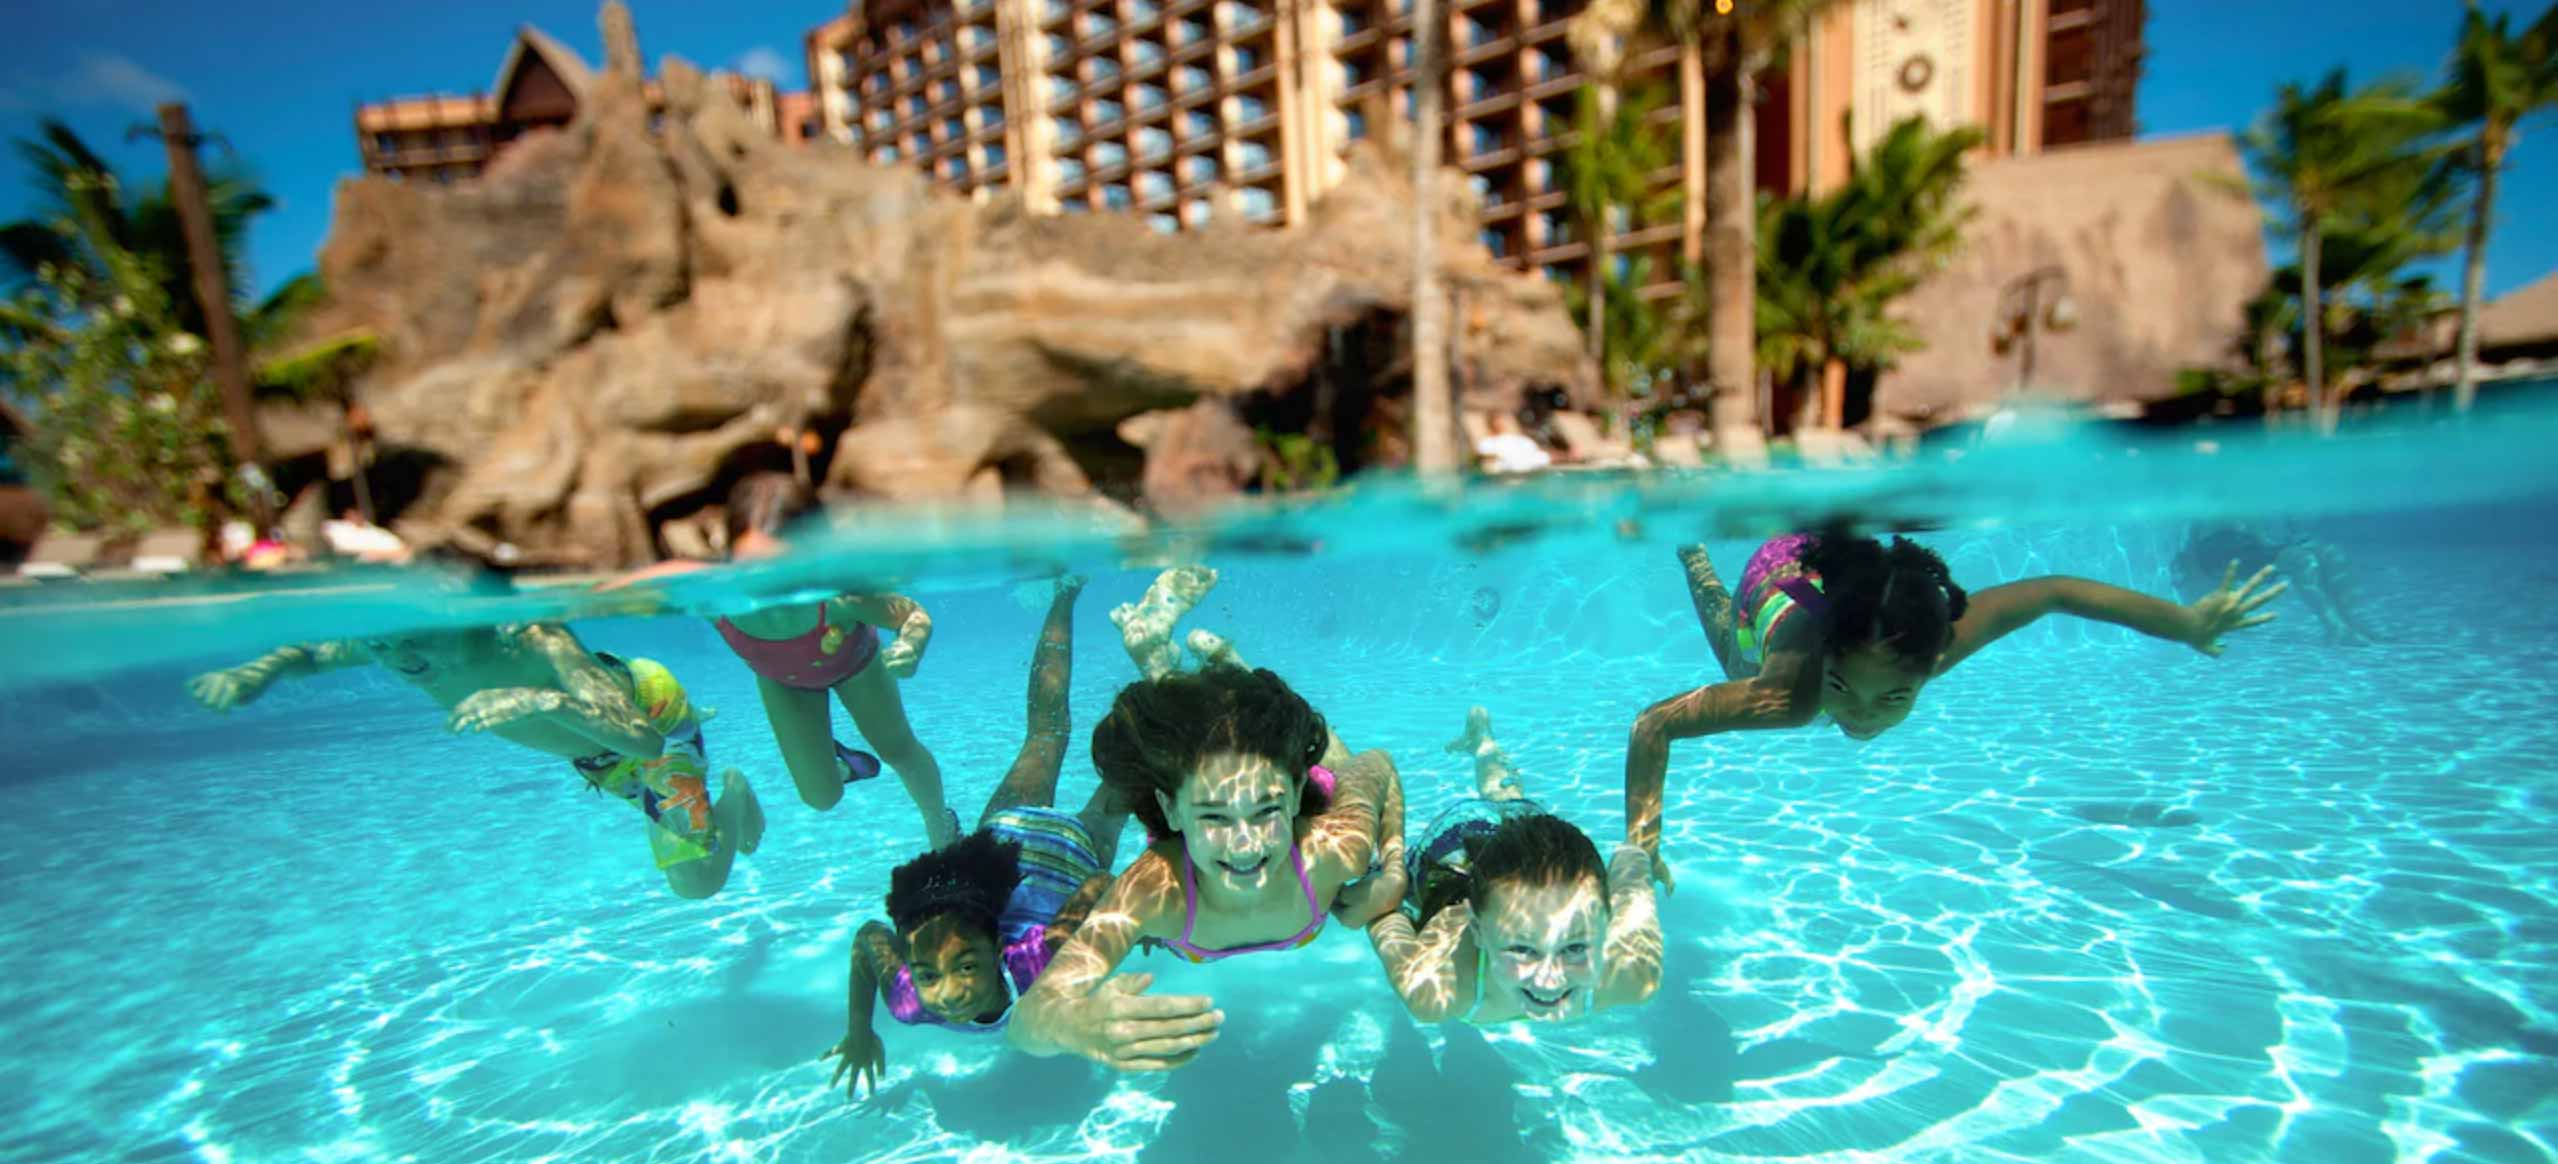 Disney Brings Magic To Hawaii with the Aulani Resort and Spa